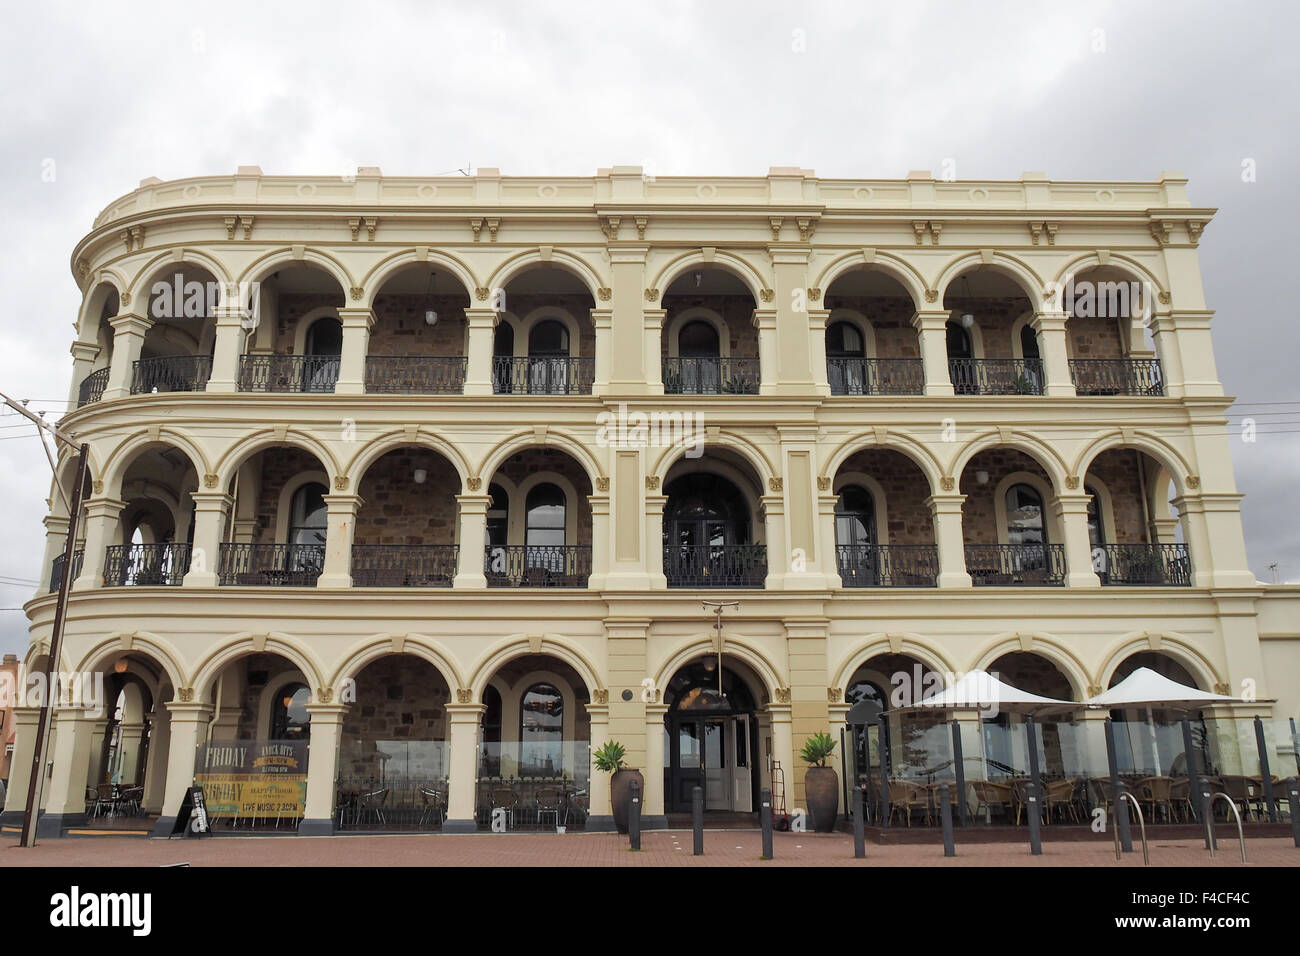 Historic Largs Pier Hotel, Adelaide. - Stock Image